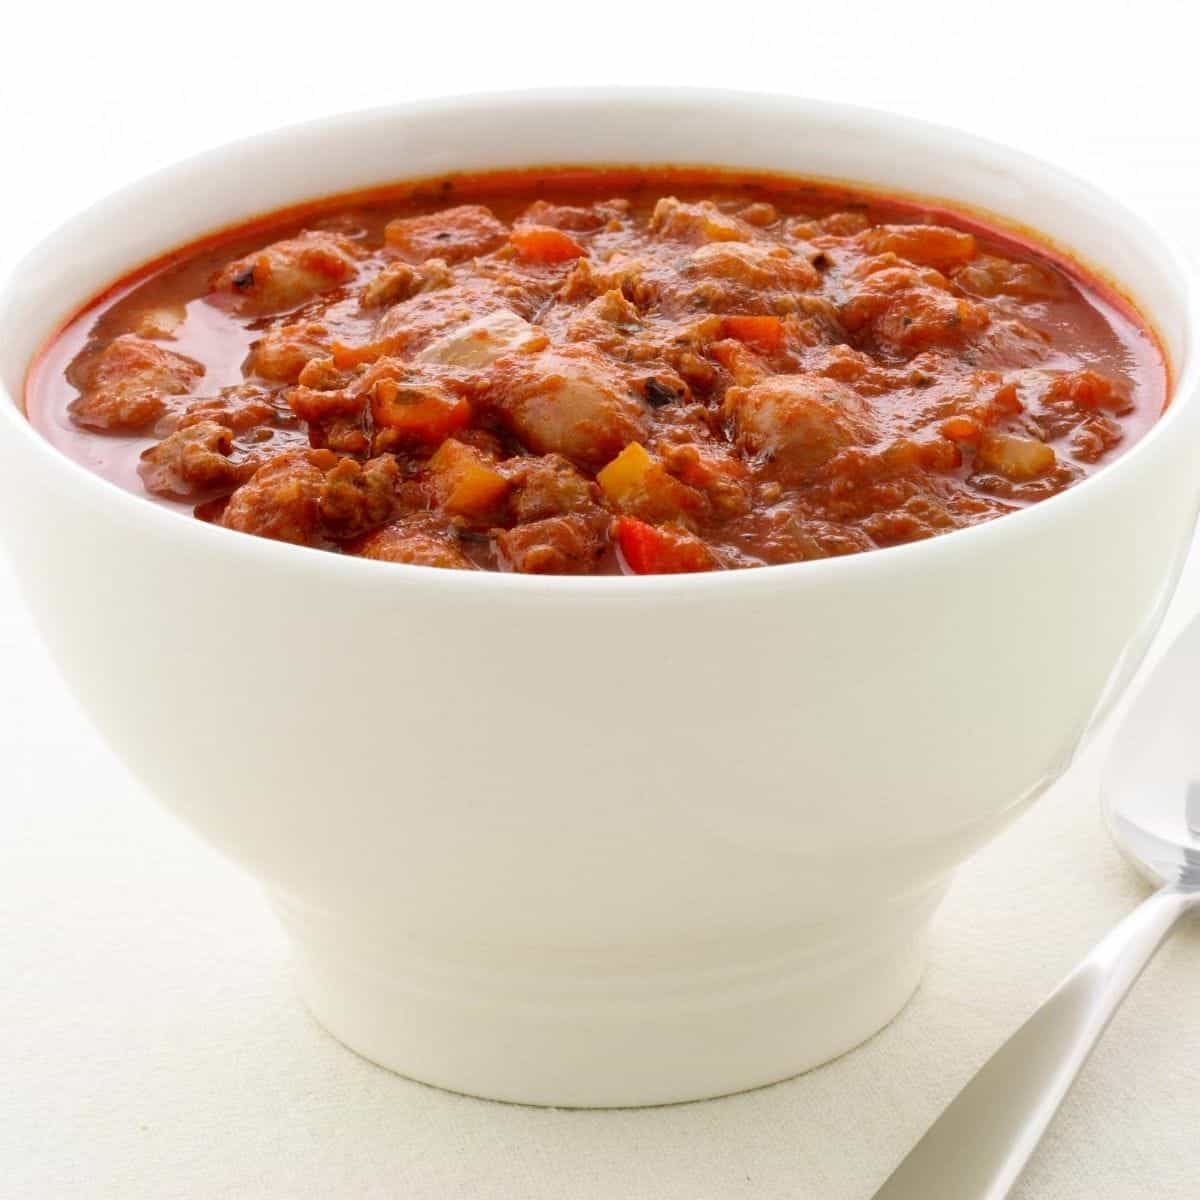 keto friendly chili in a bowl